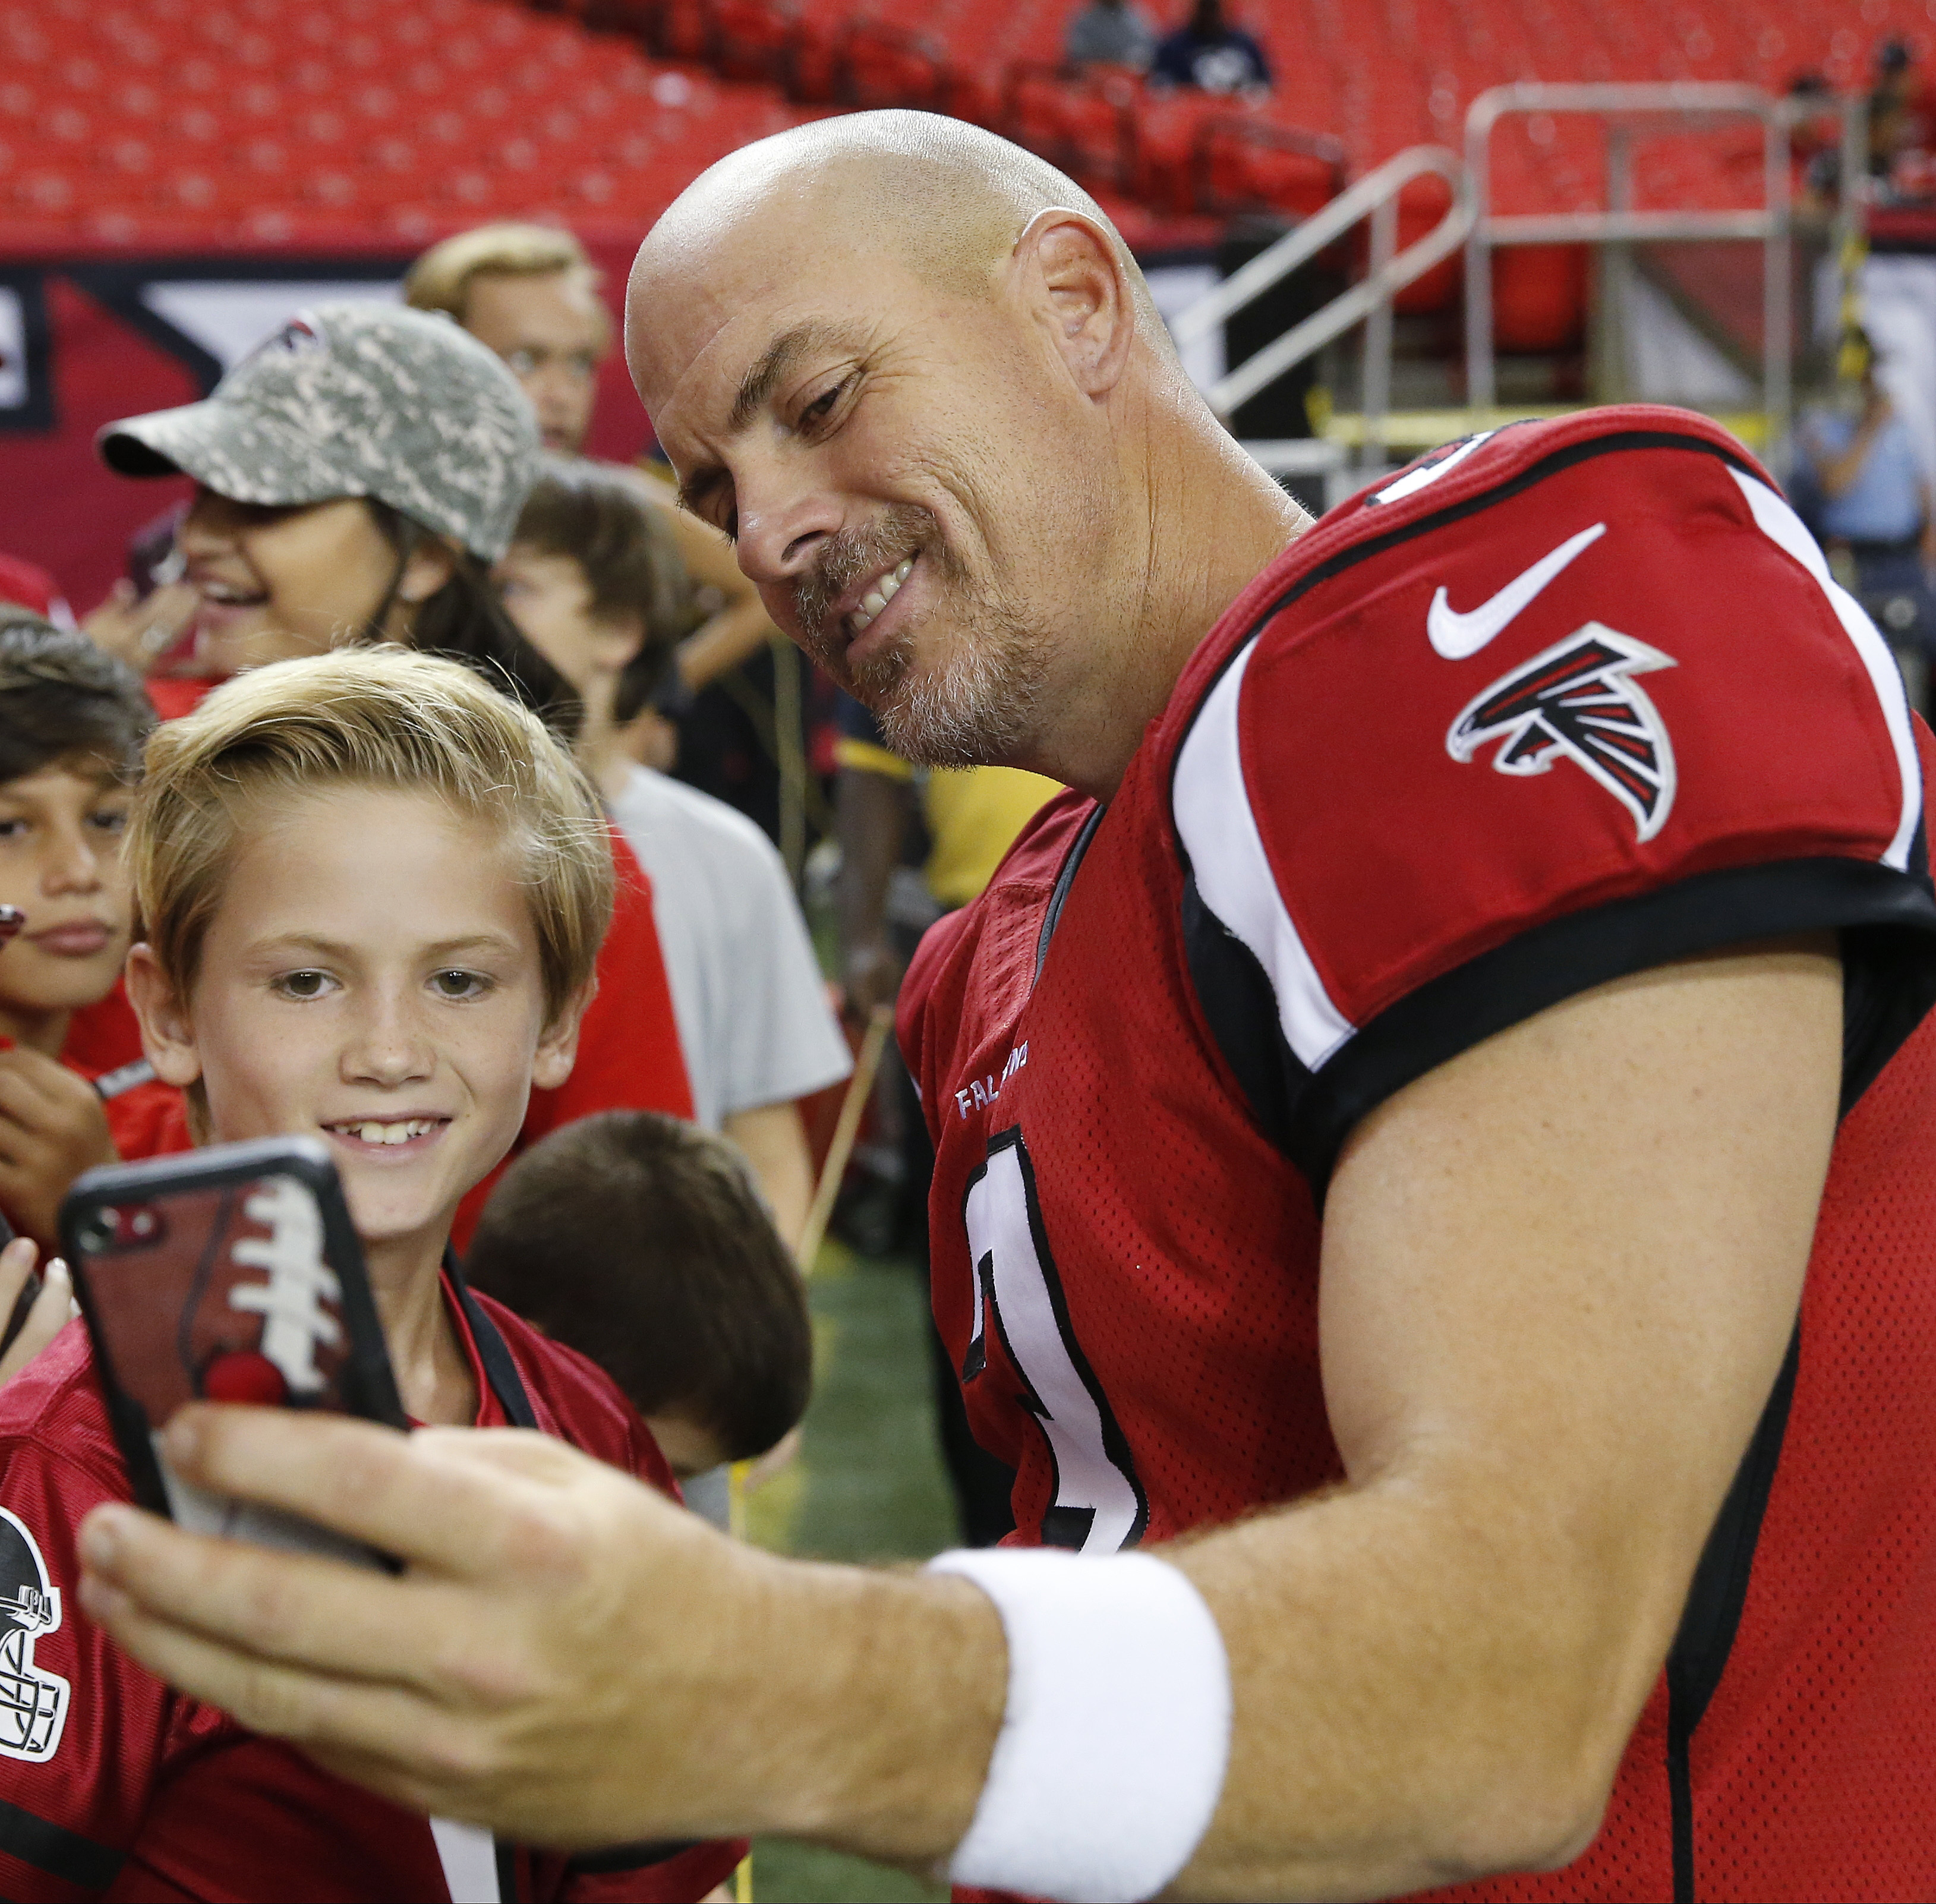 Atlanta Falcons kicker Matt Bryant, right, shoots a photo with a young fan on the turf before the first half of a preseason NFL football game between the Atlanta Falcons and the Jacksonville Jaguars, Thursday, Sept. 1, 2016, in Atlanta. (AP Photo/John Baz